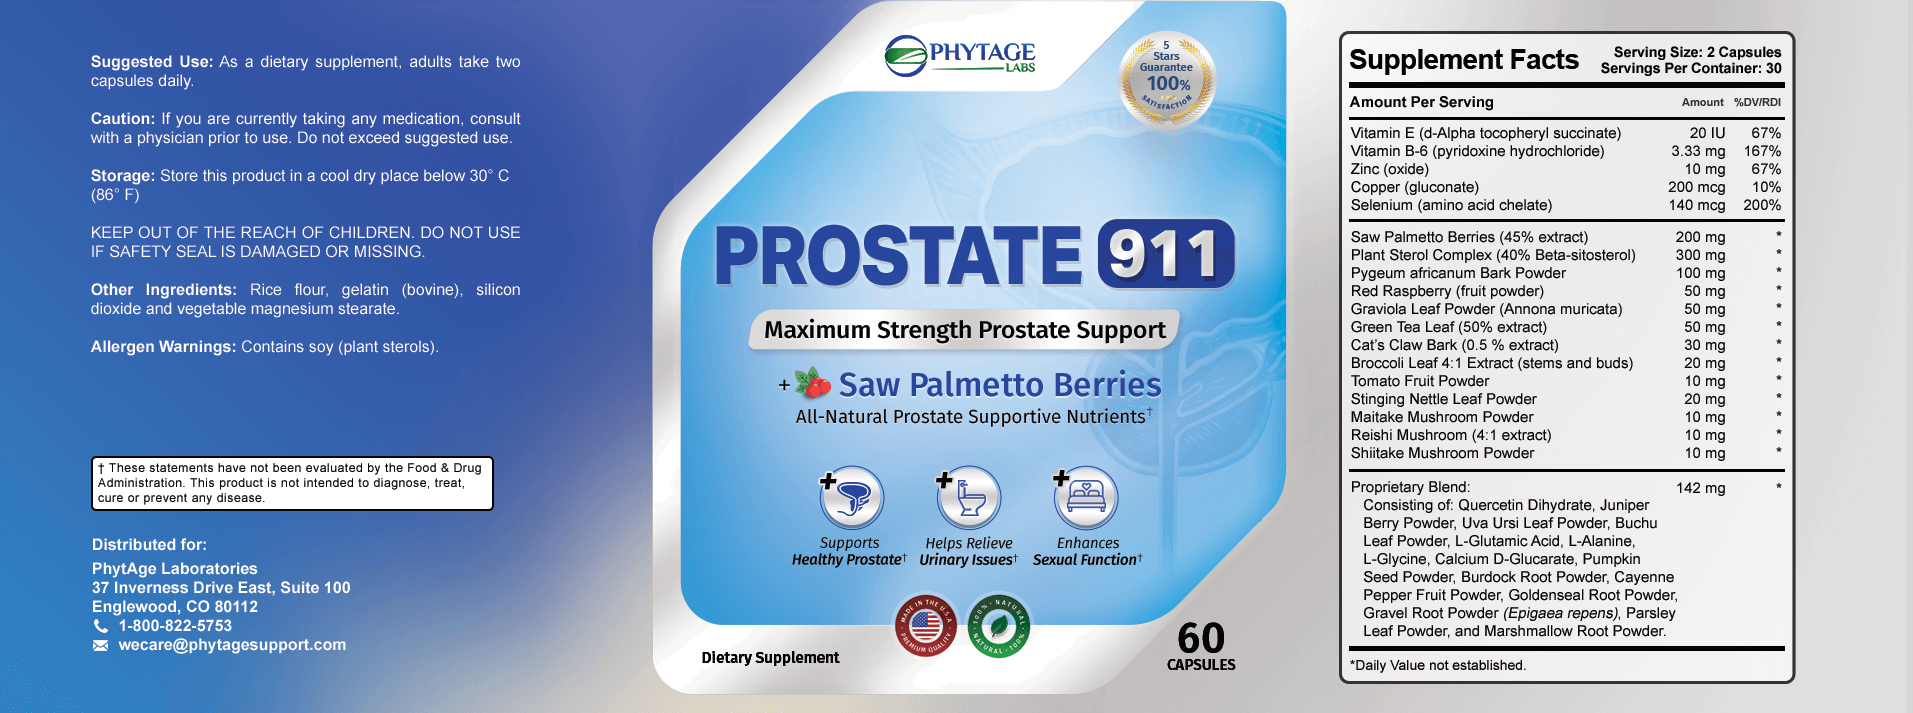 Prostate 911™ ingredients